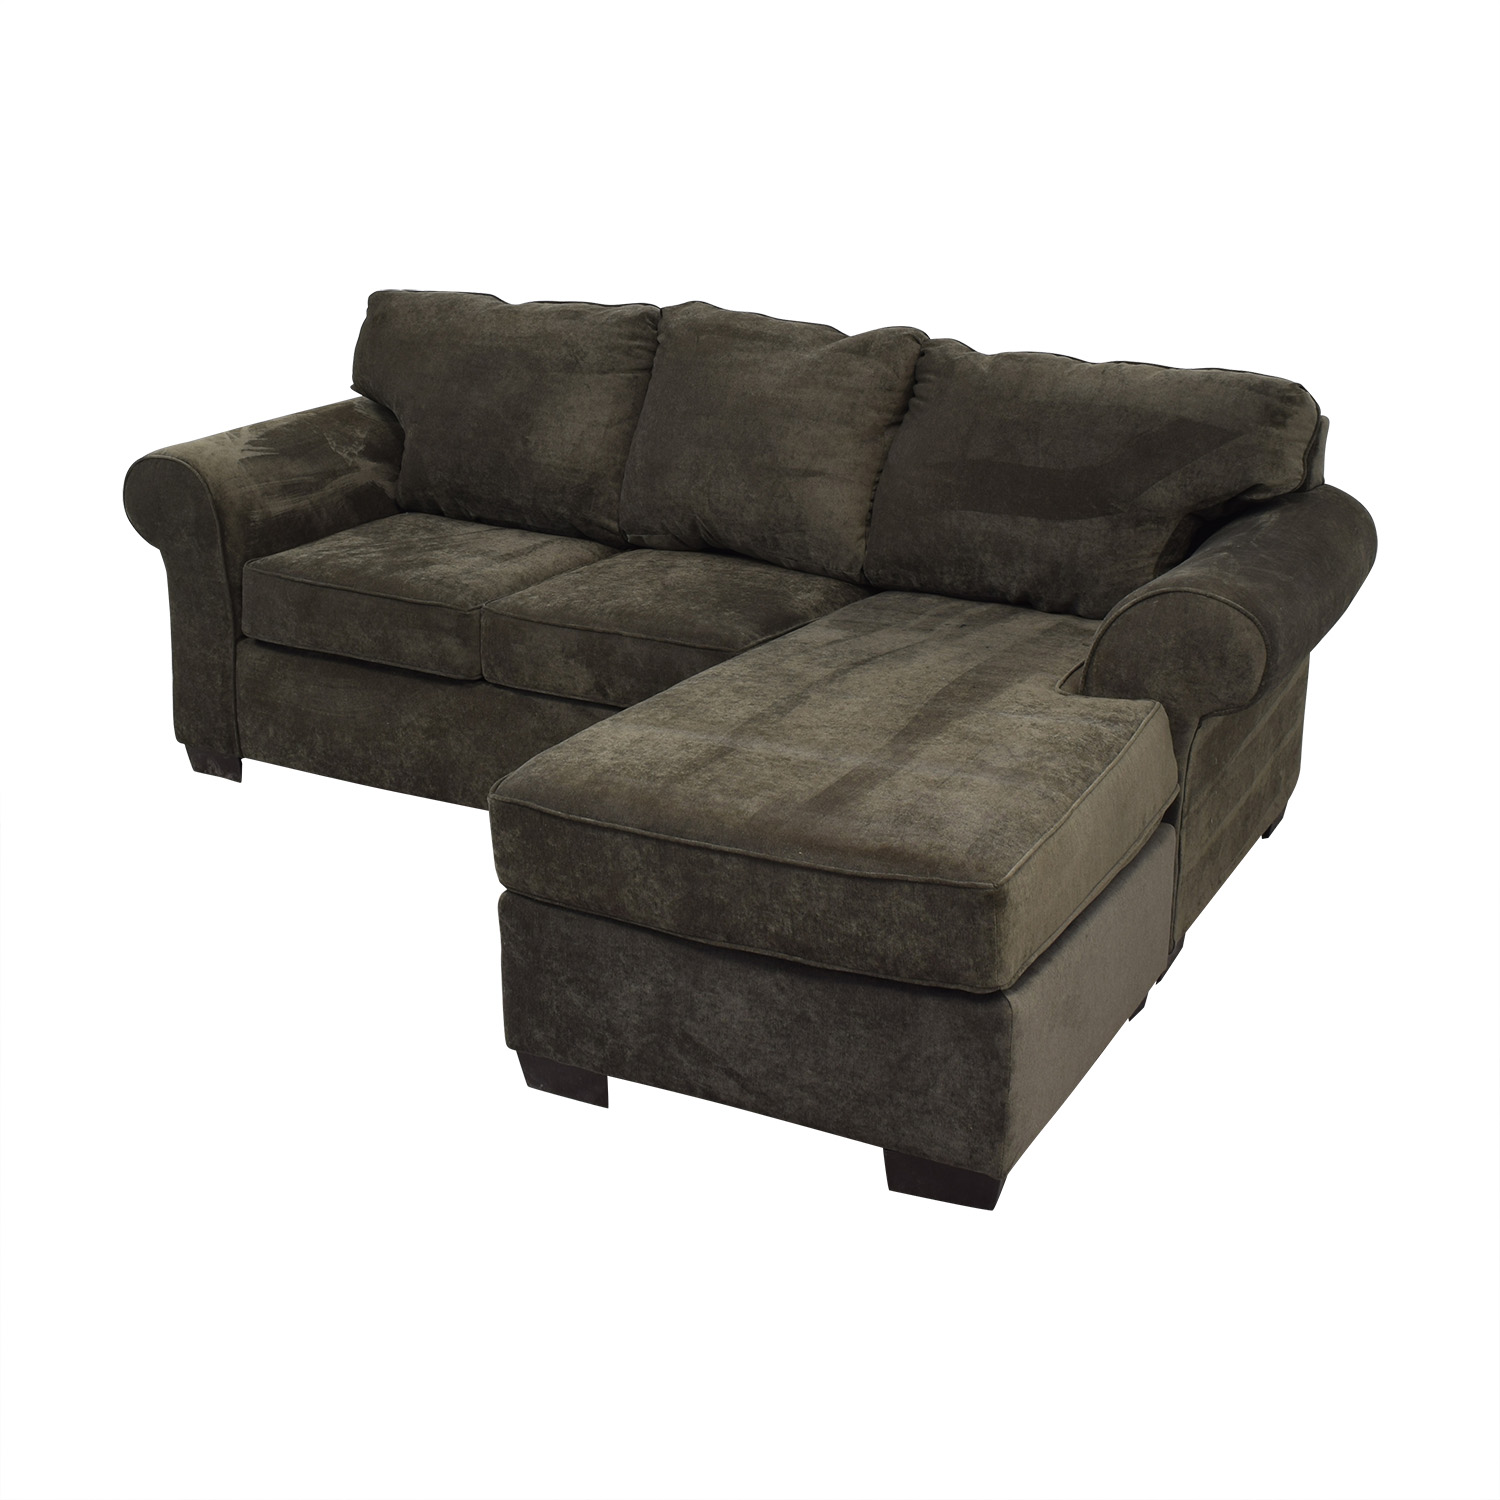 Raymour & Flanigan Raymour & Flanigan Grey Chaise Sectional price